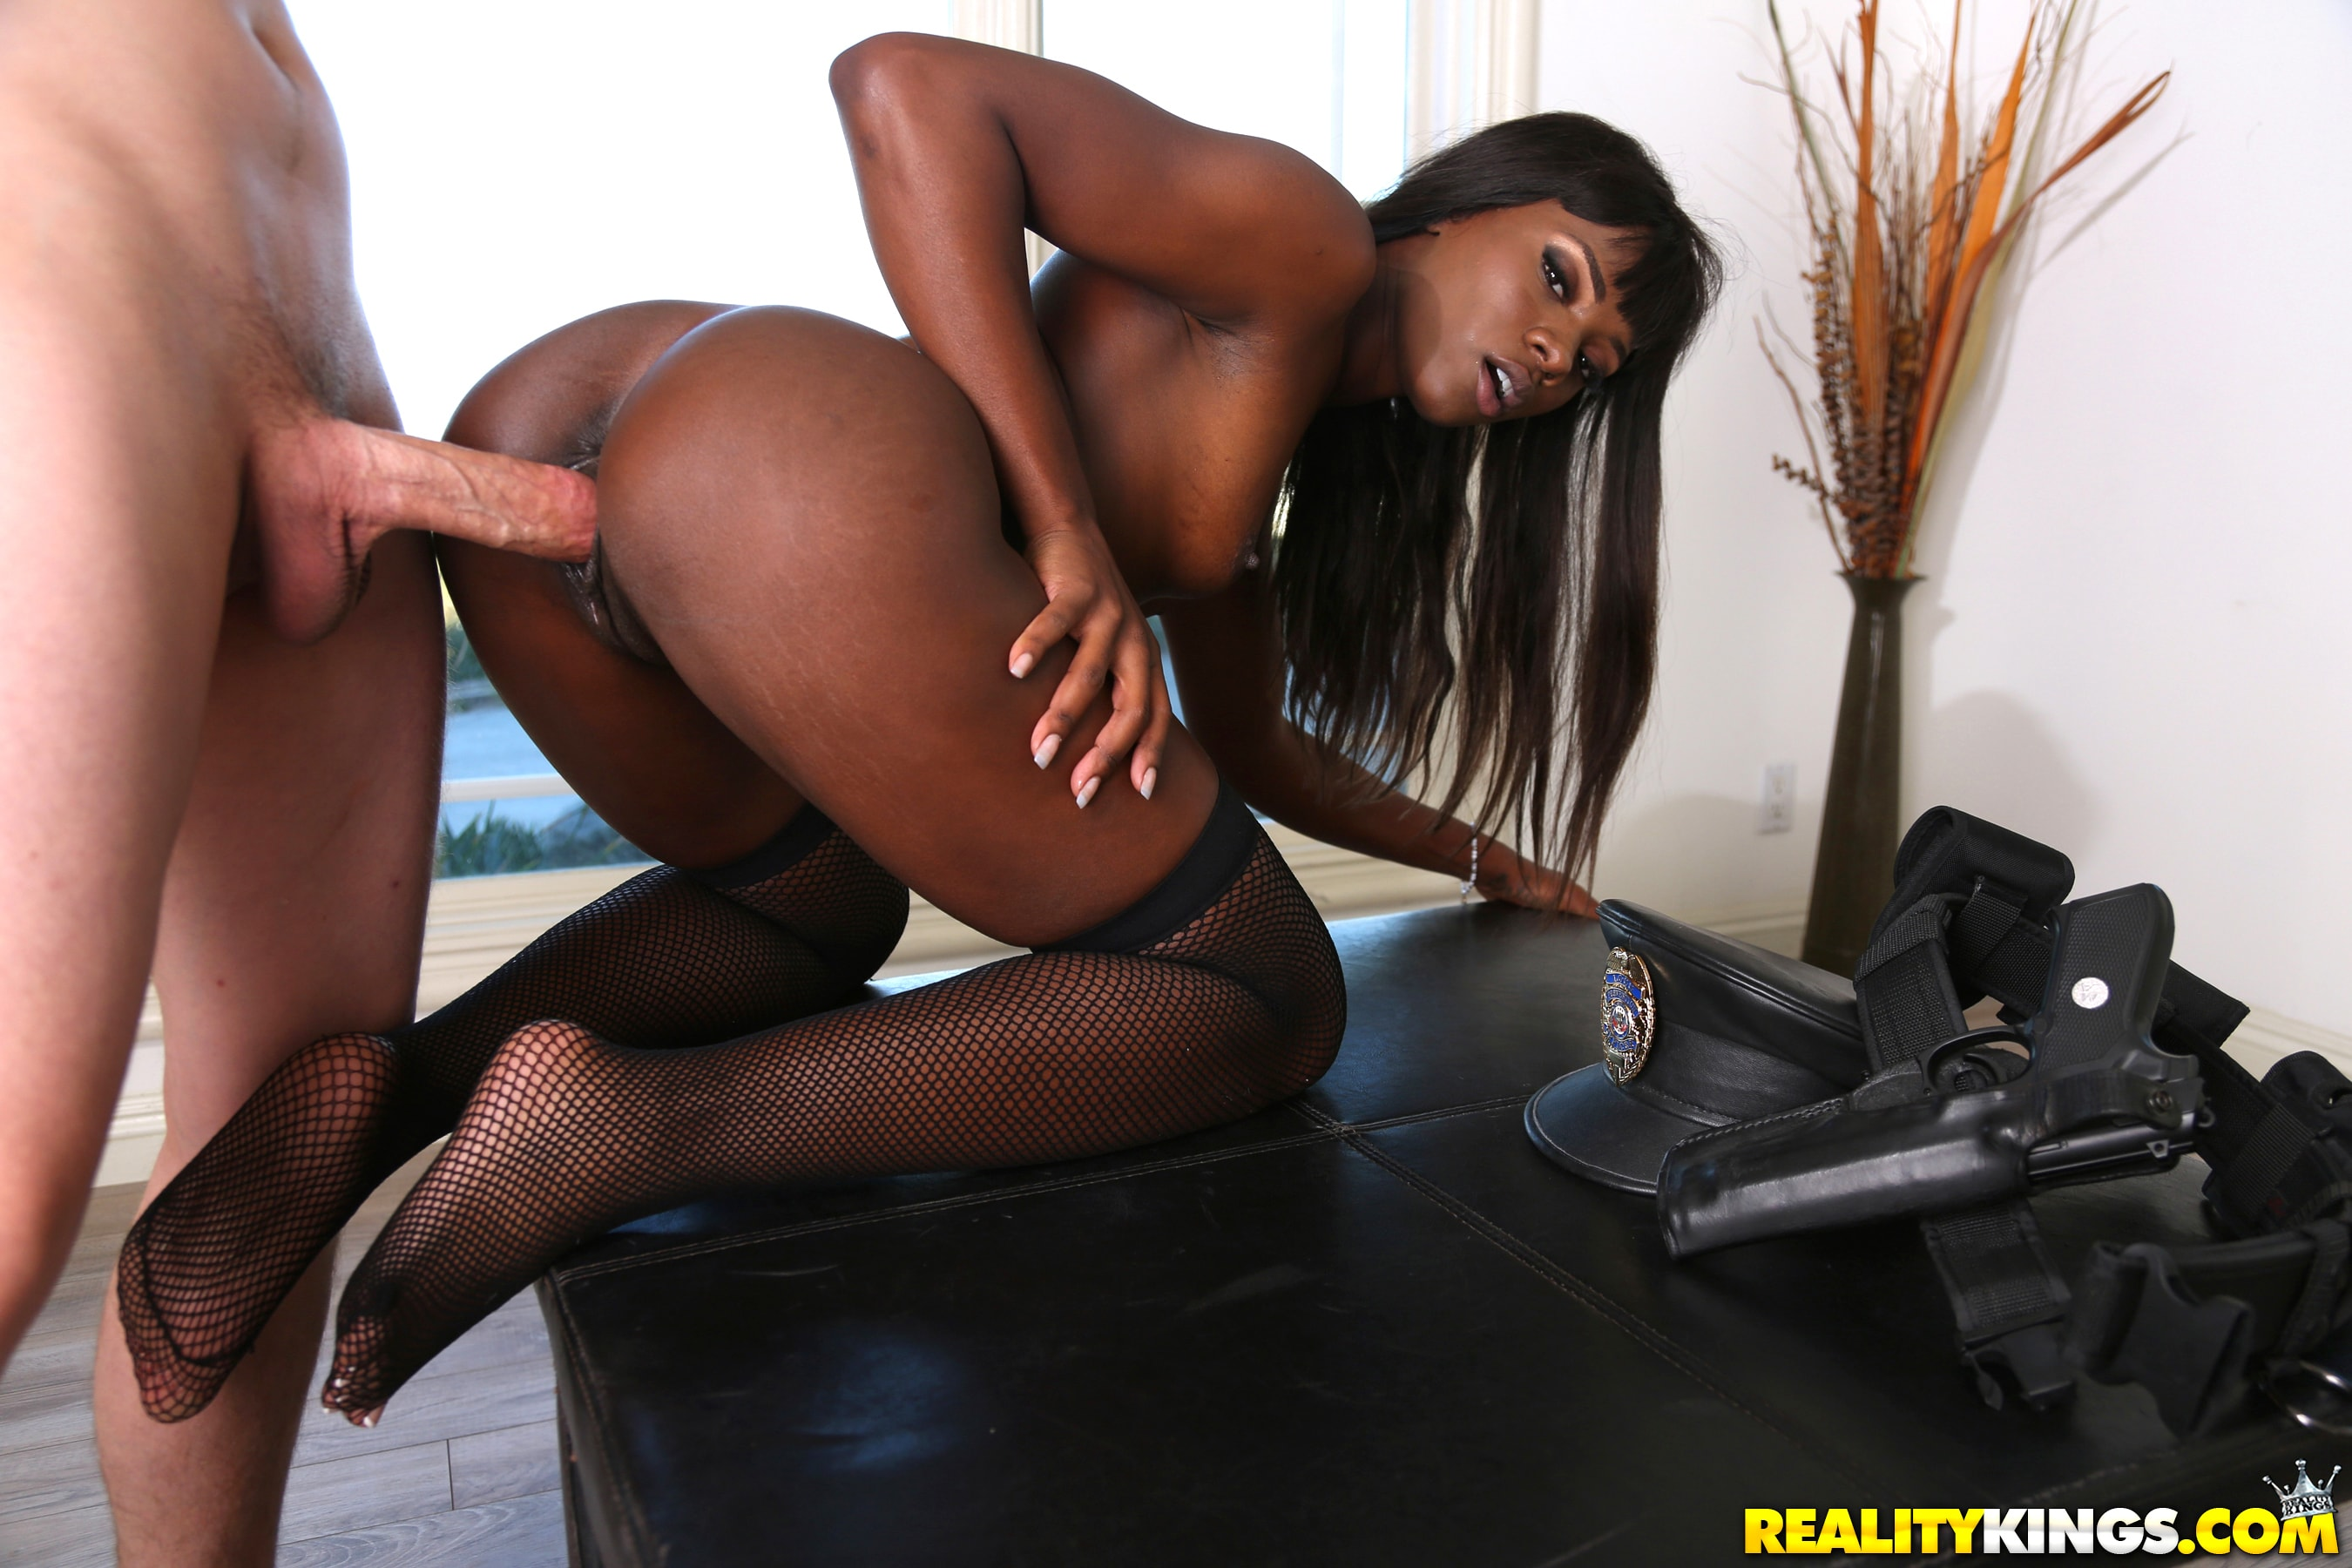 Robby echo, camille amore in this white boy likes it round, brown and juicy, hd